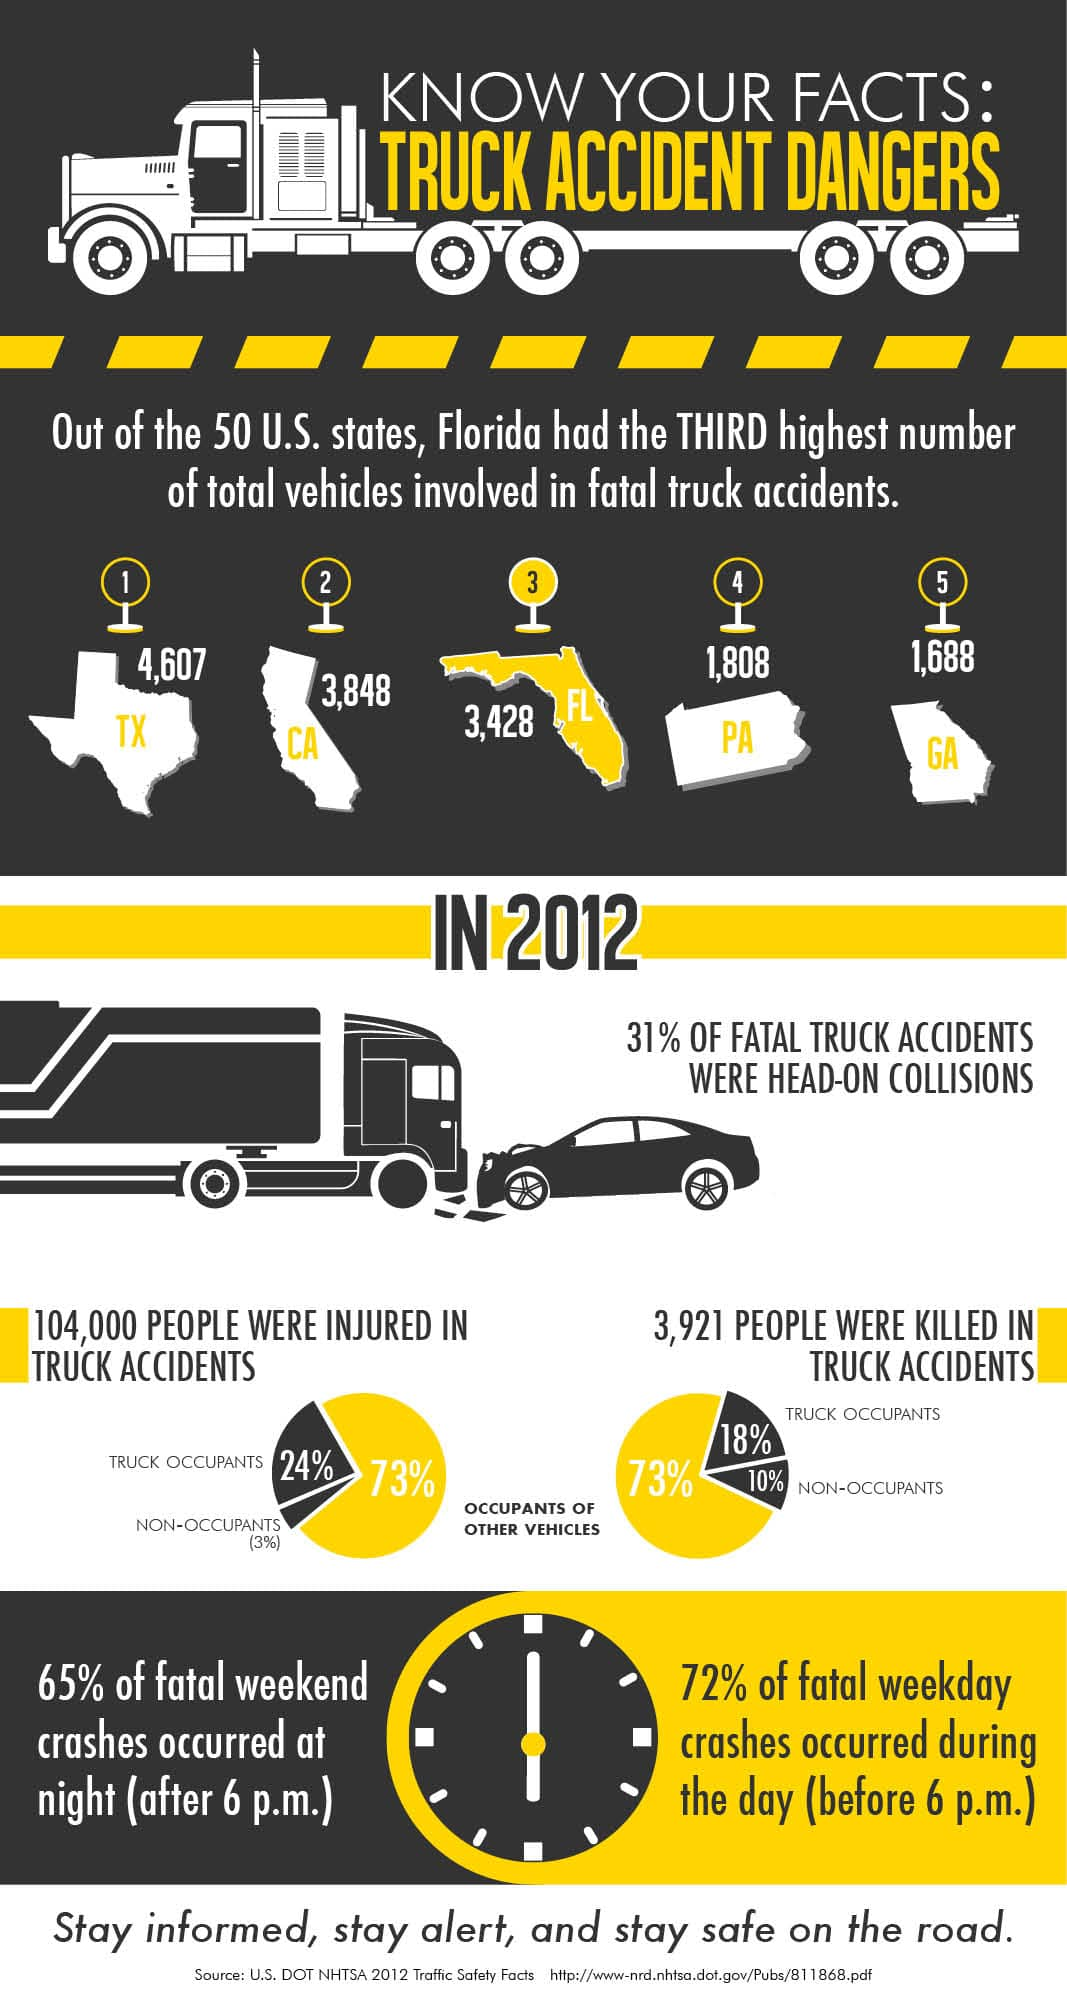 Truck-Accident-Dangers-Infographic